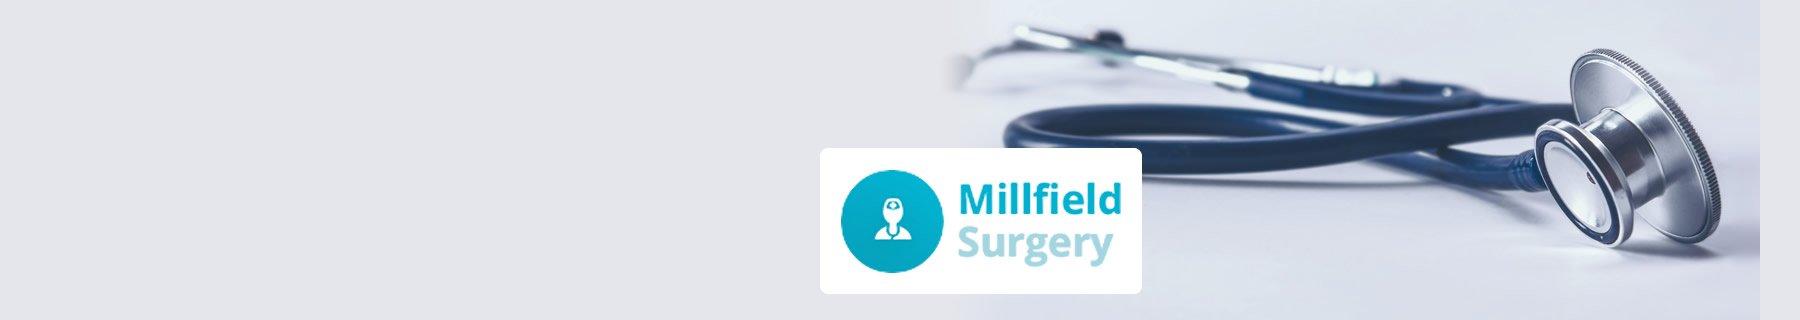 Ongoing technical issues with their BT/Teleware phone system forced Millfield to move to Surgery Connect